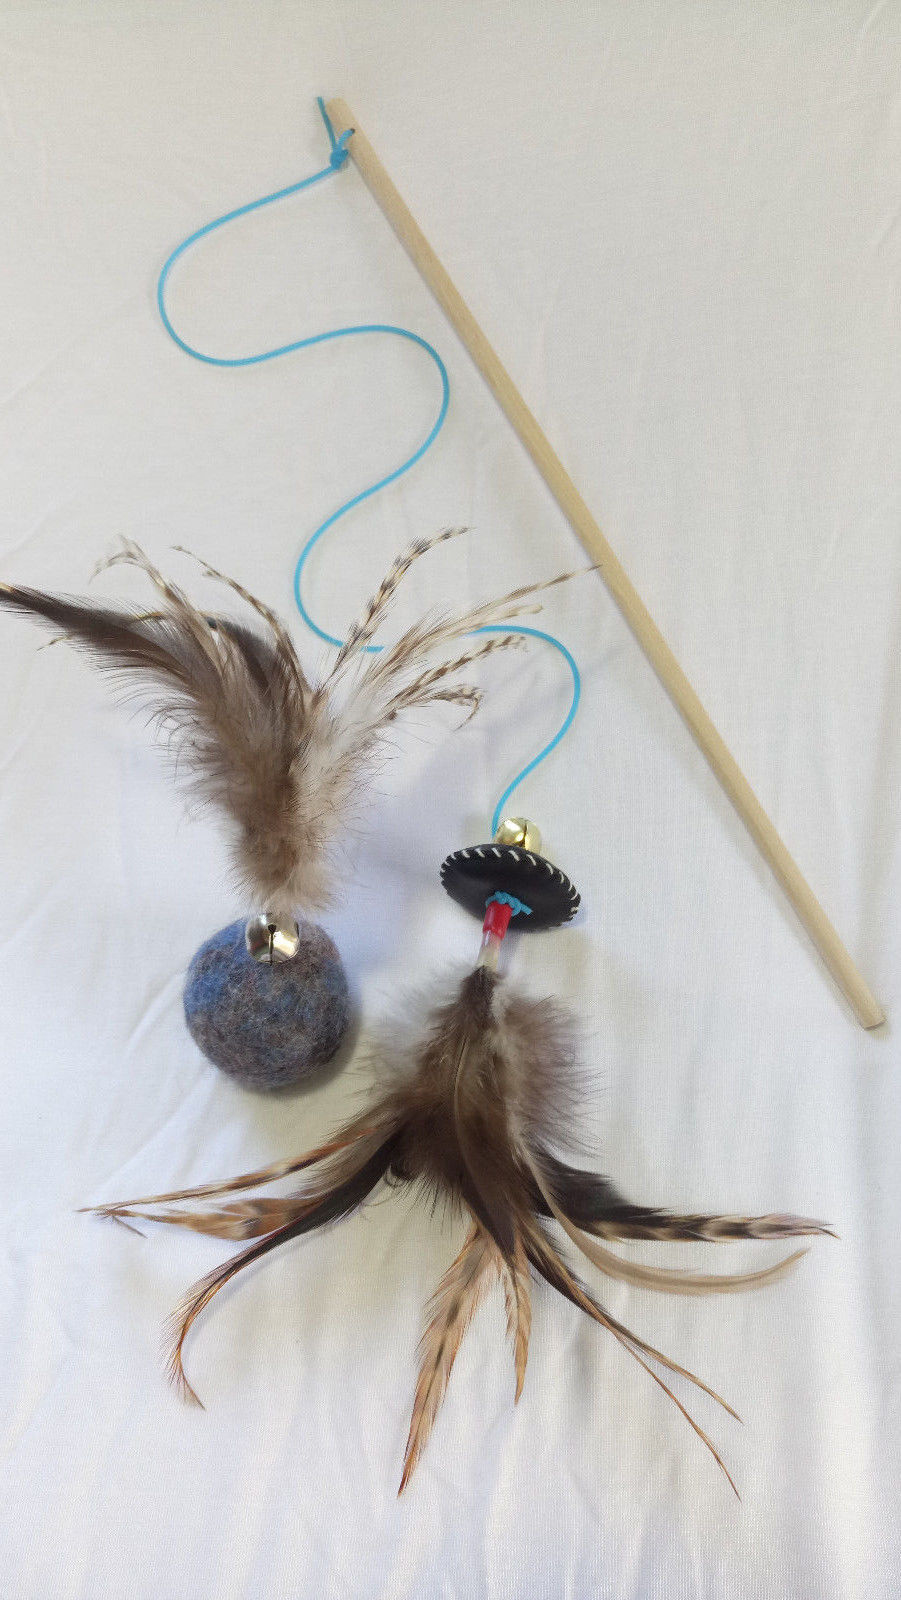 Smart & happy Cat toys  Interactive cat teaser wand and wool ball with feathers - $23.99